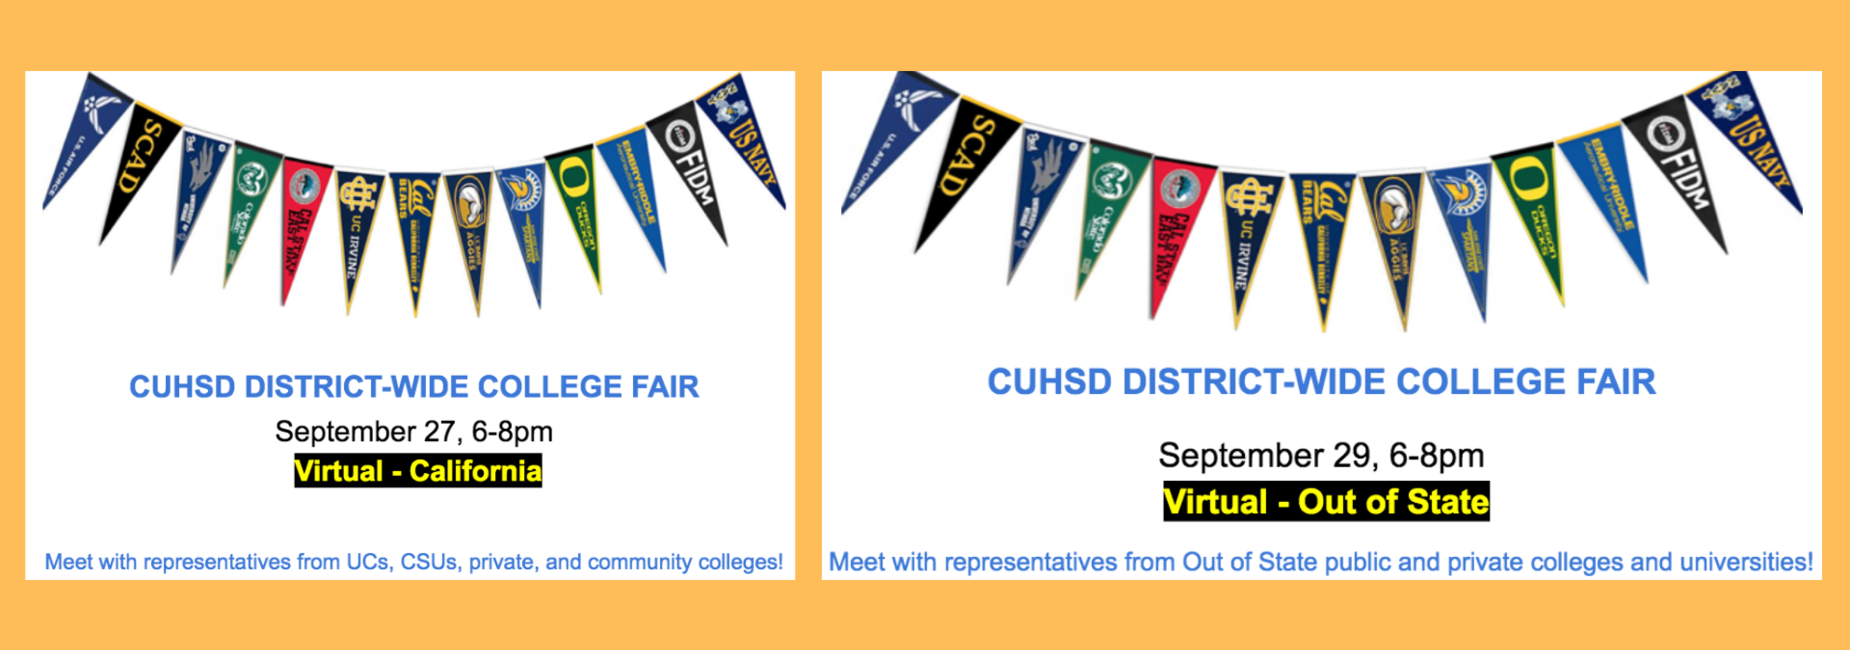 district wide college fairs on september 27 and 29